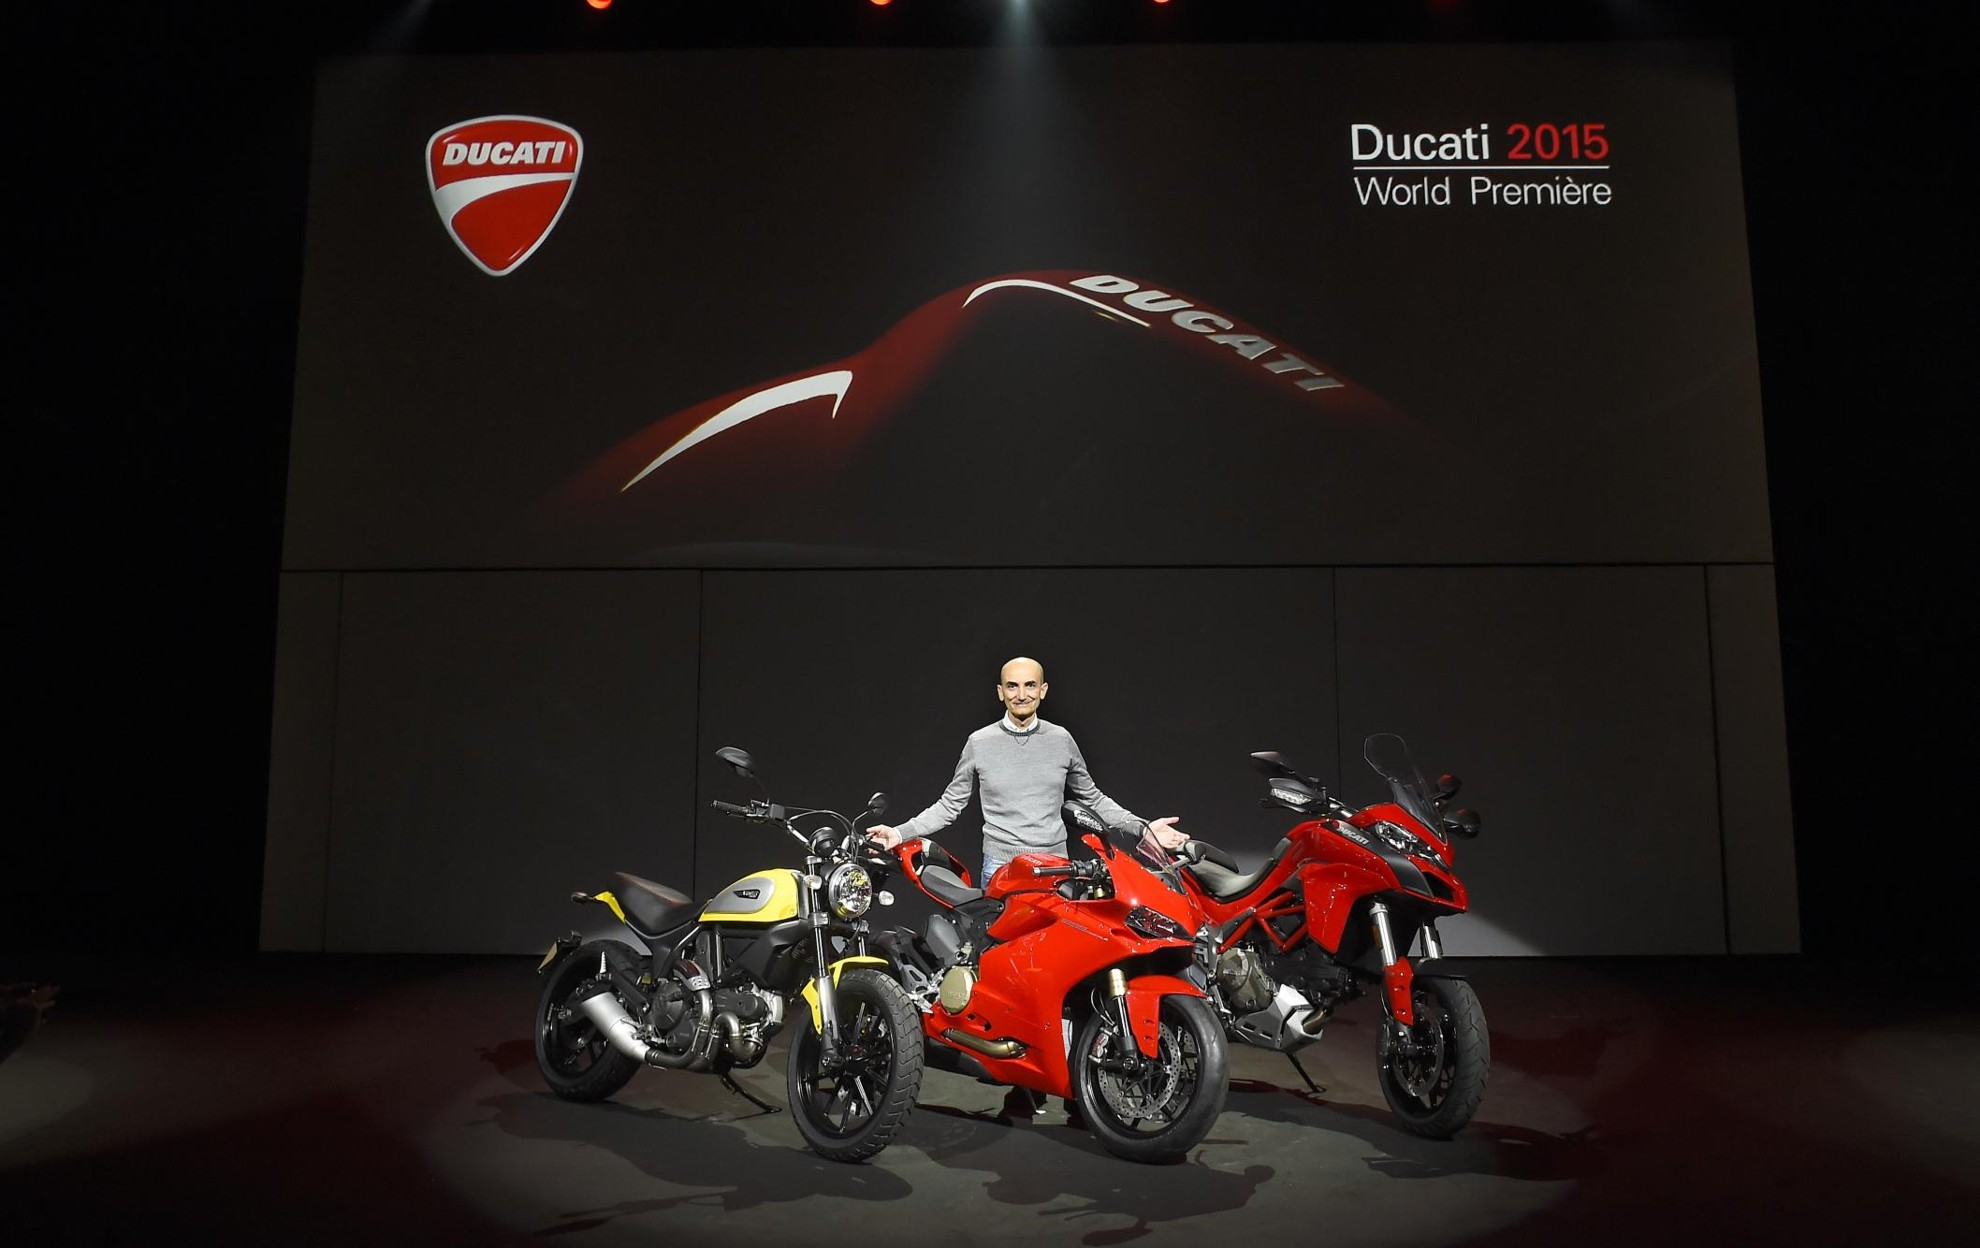 Ducati_2015_World_Premiere_Domenicali_01[1]